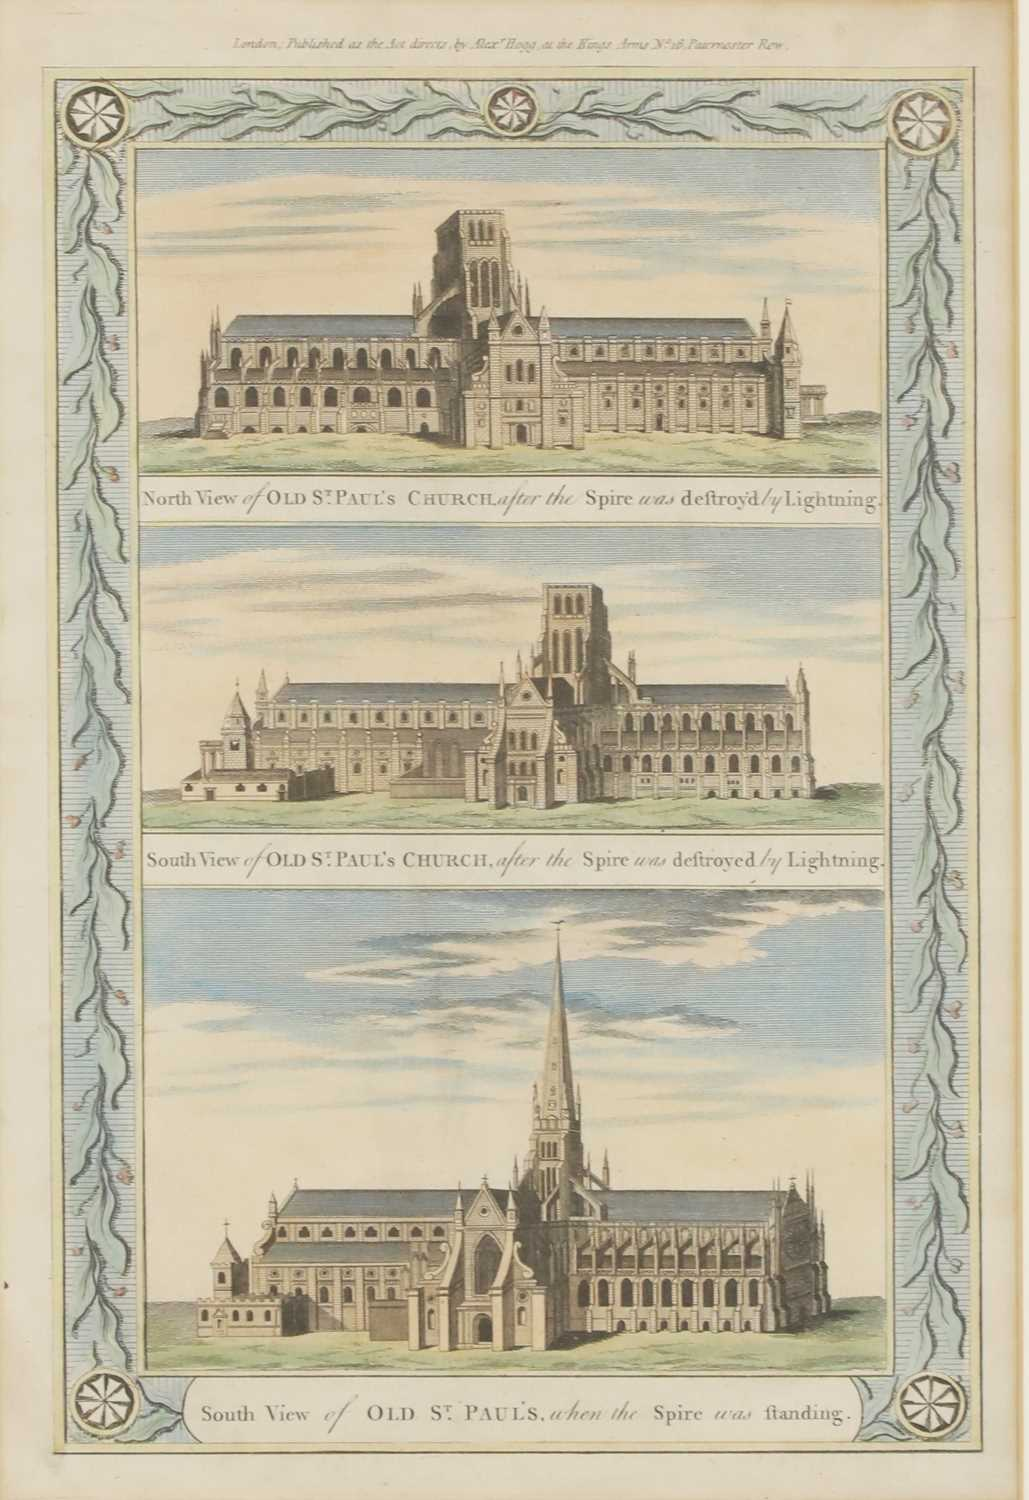 THORNTON'S 'NEW HISTORY & SURVEY OF LONDON AND WESTMINSTER' - Image 2 of 14